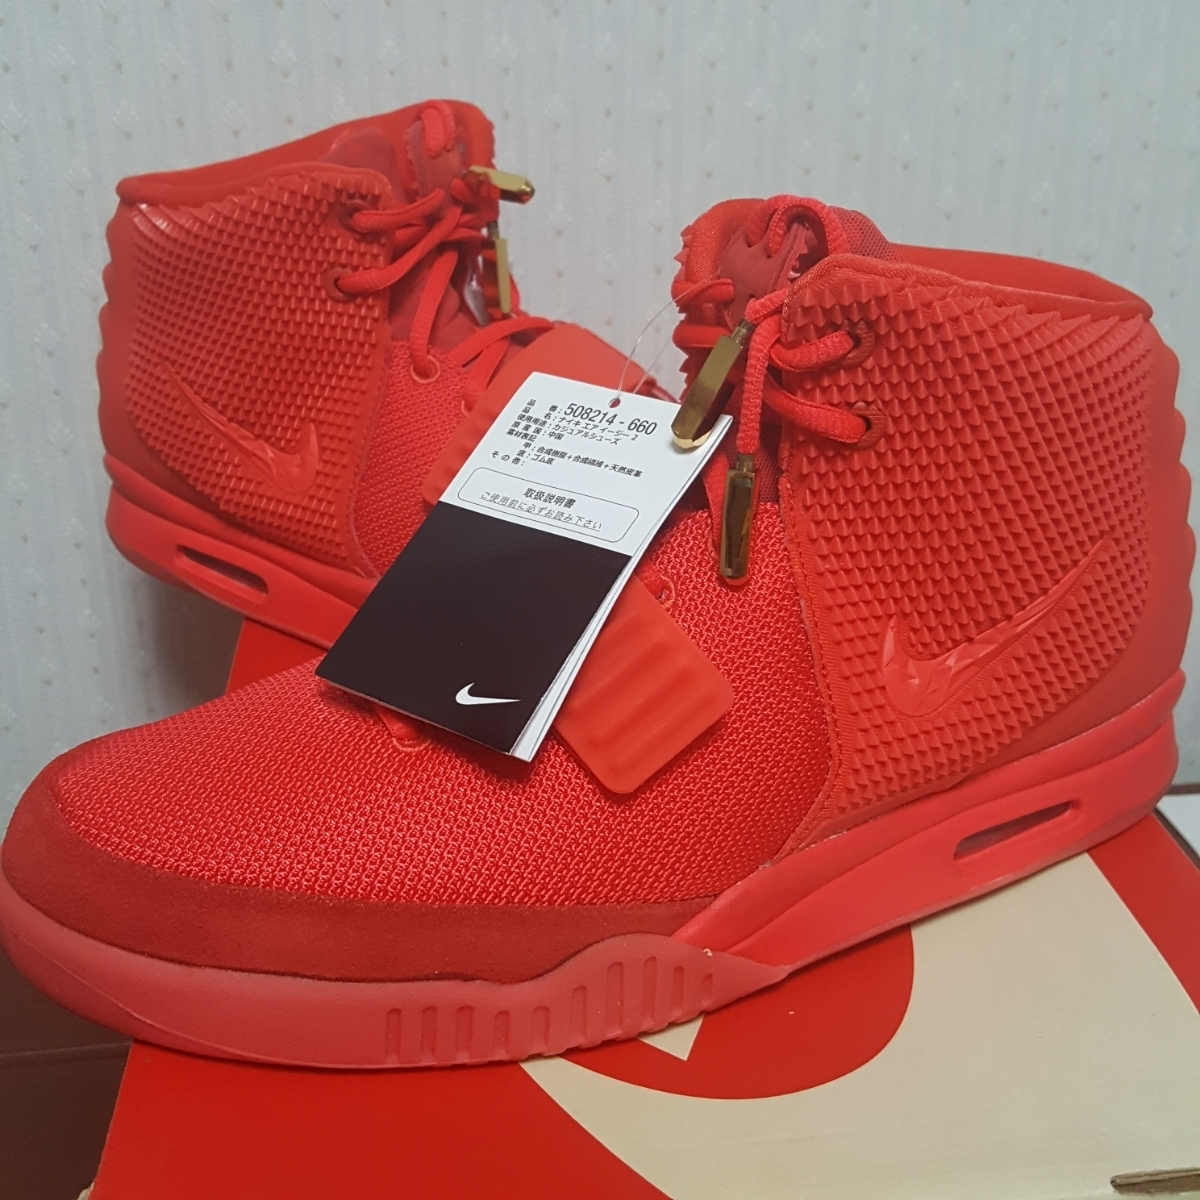 huge selection of 9d439 36d98 red october nike air yeezy 2 sneakers Cheap ...